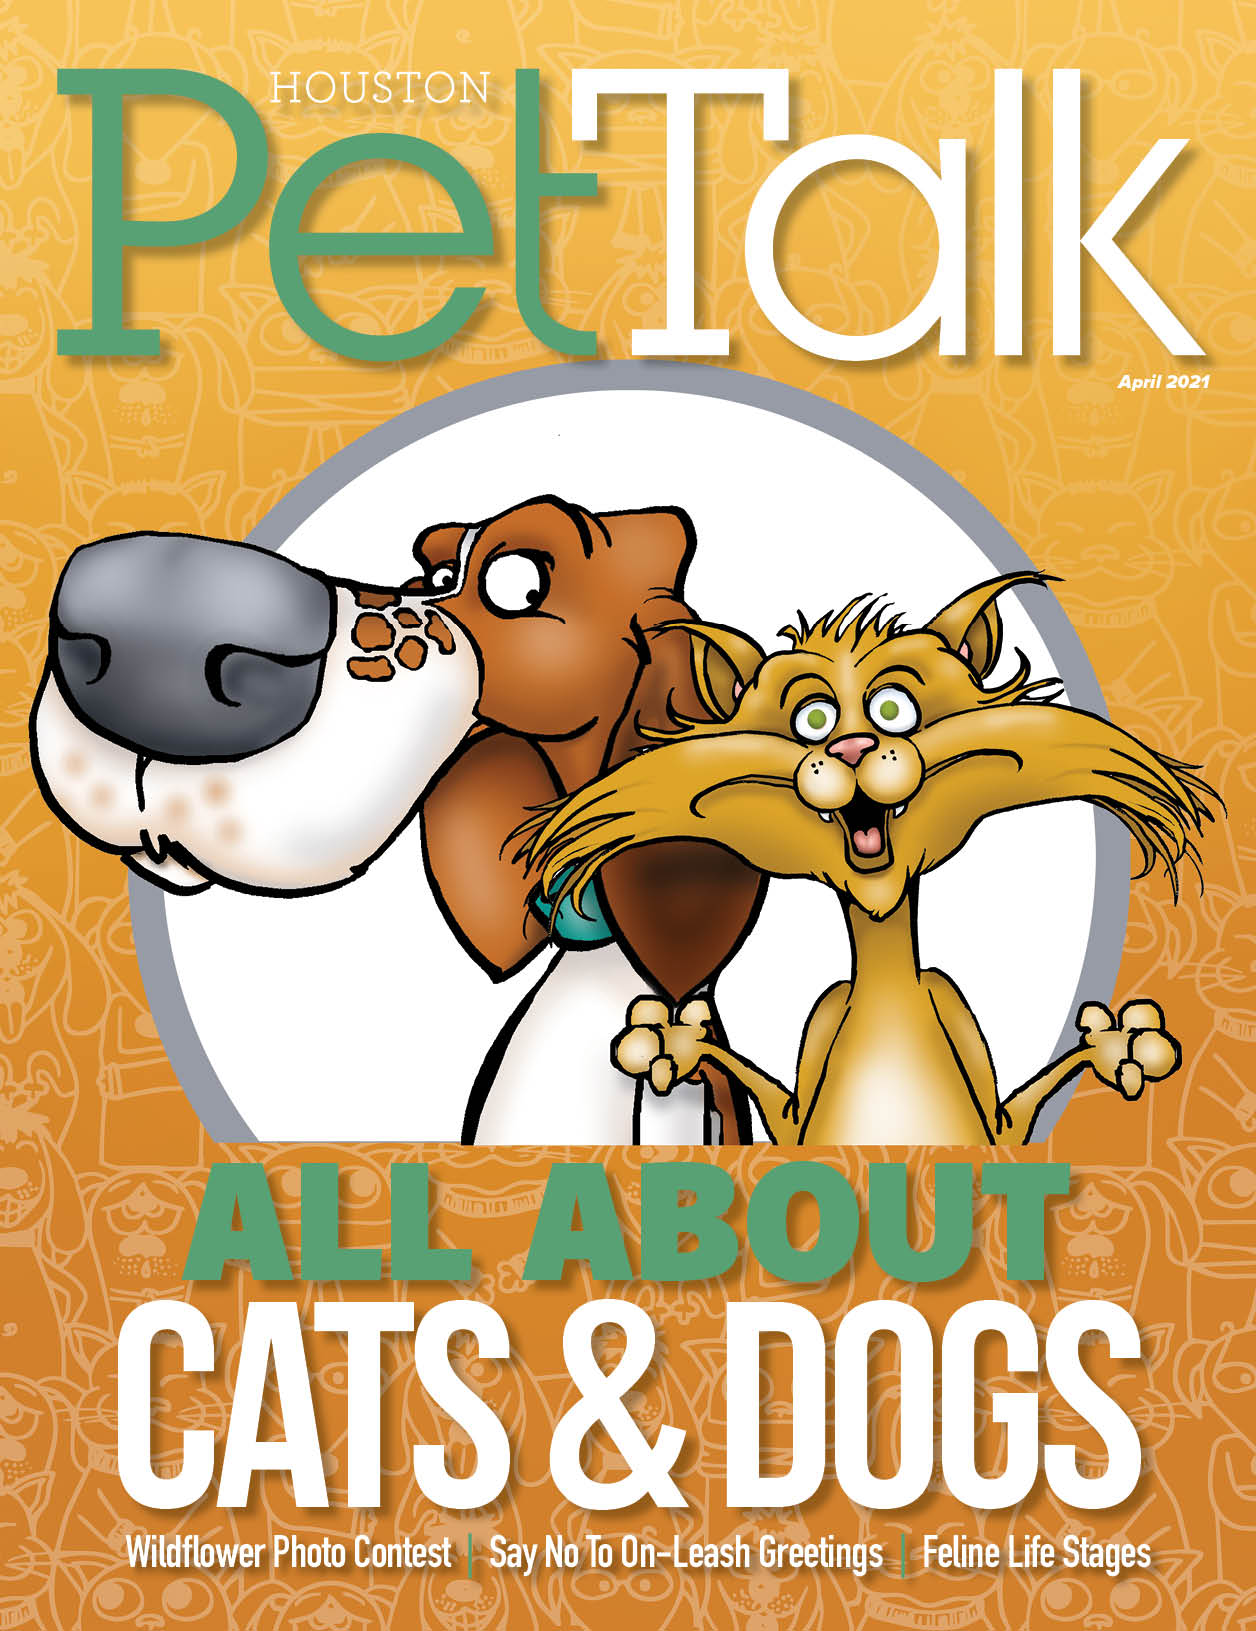 April 2021 Digital Issue of Houston PetTalk